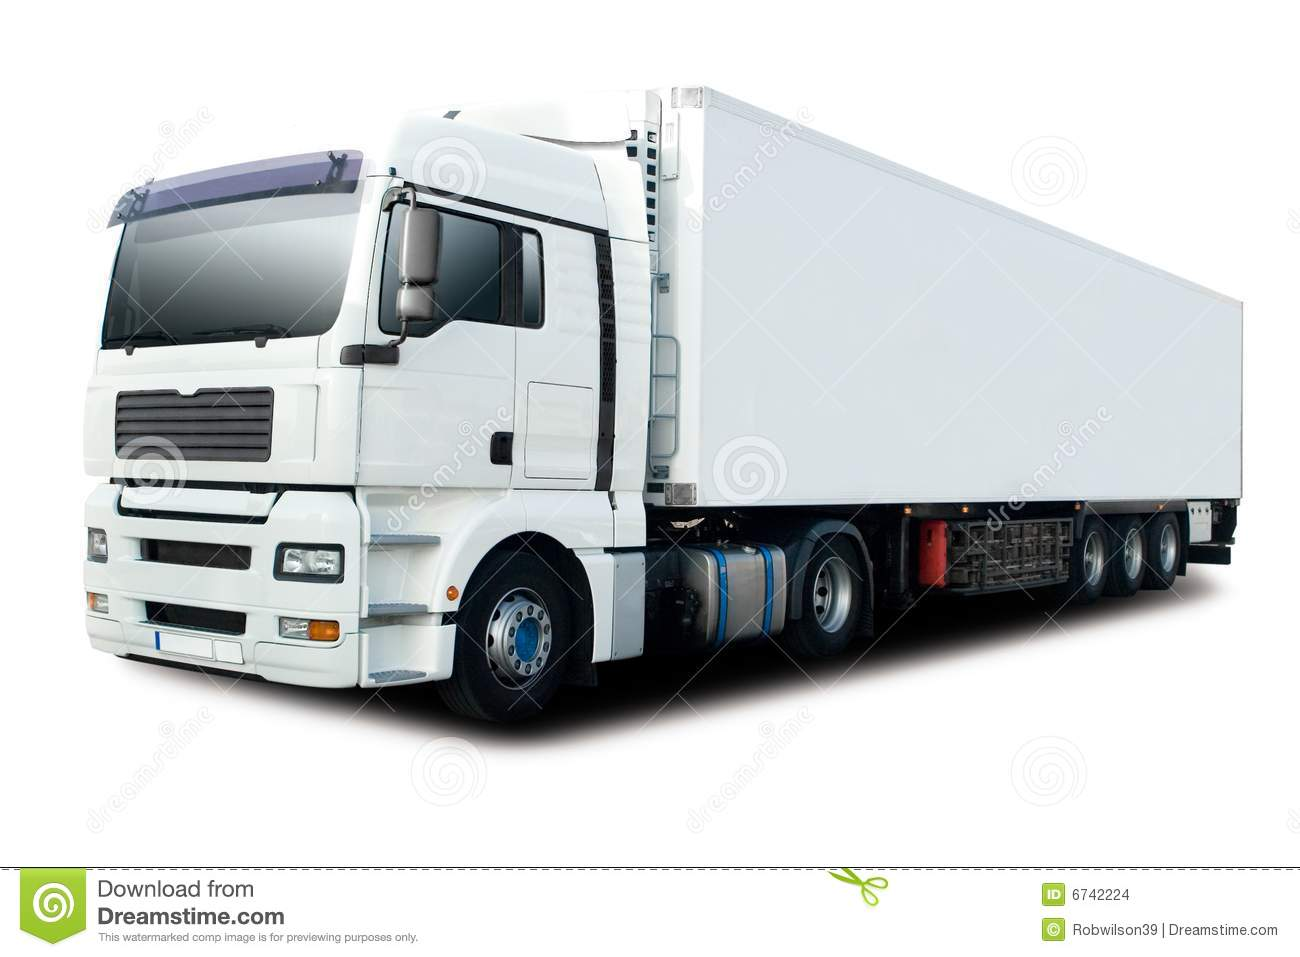 Vans together with 4729038795 in addition Benefits Of All Electric Systems Over Diesel Trailer Storage additionally Fleet Specification as well . on semi truck reefer trailers